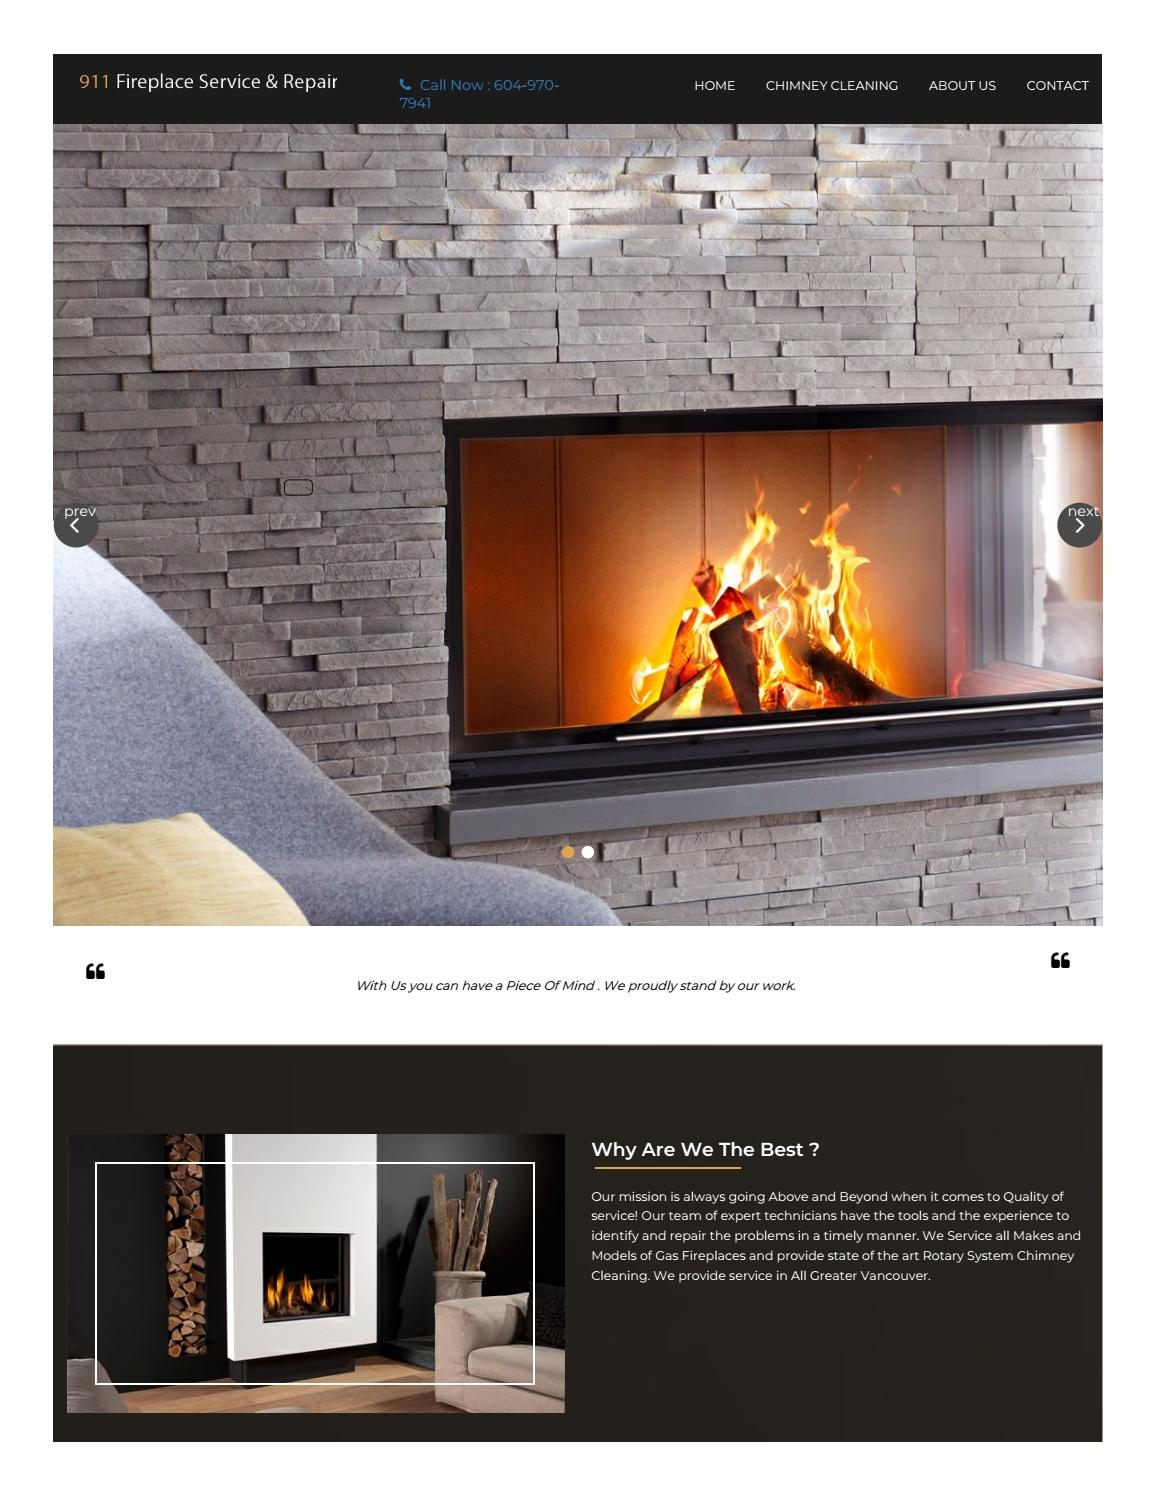 gas fireplace repair and service